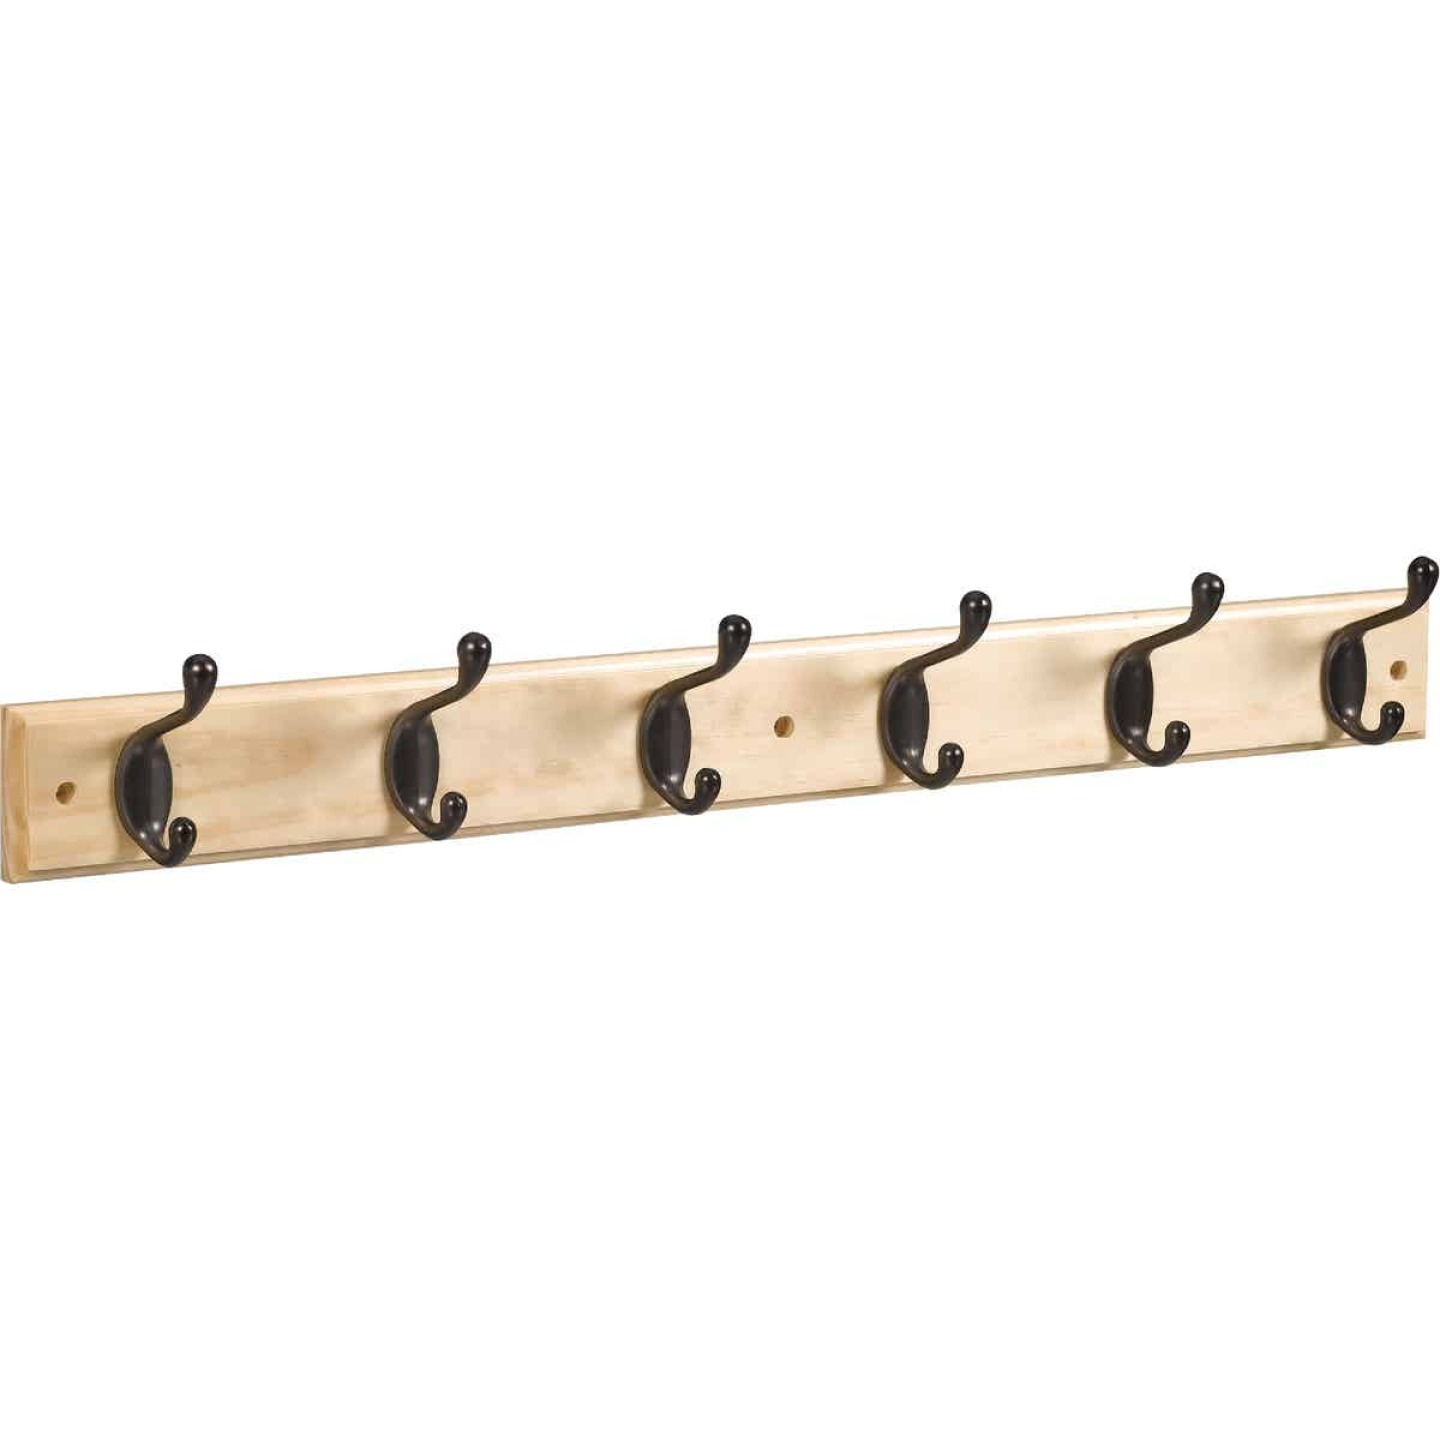 Stanley 27 In. Oil Rubbed Bronze/Natural Hook Rail Image 1